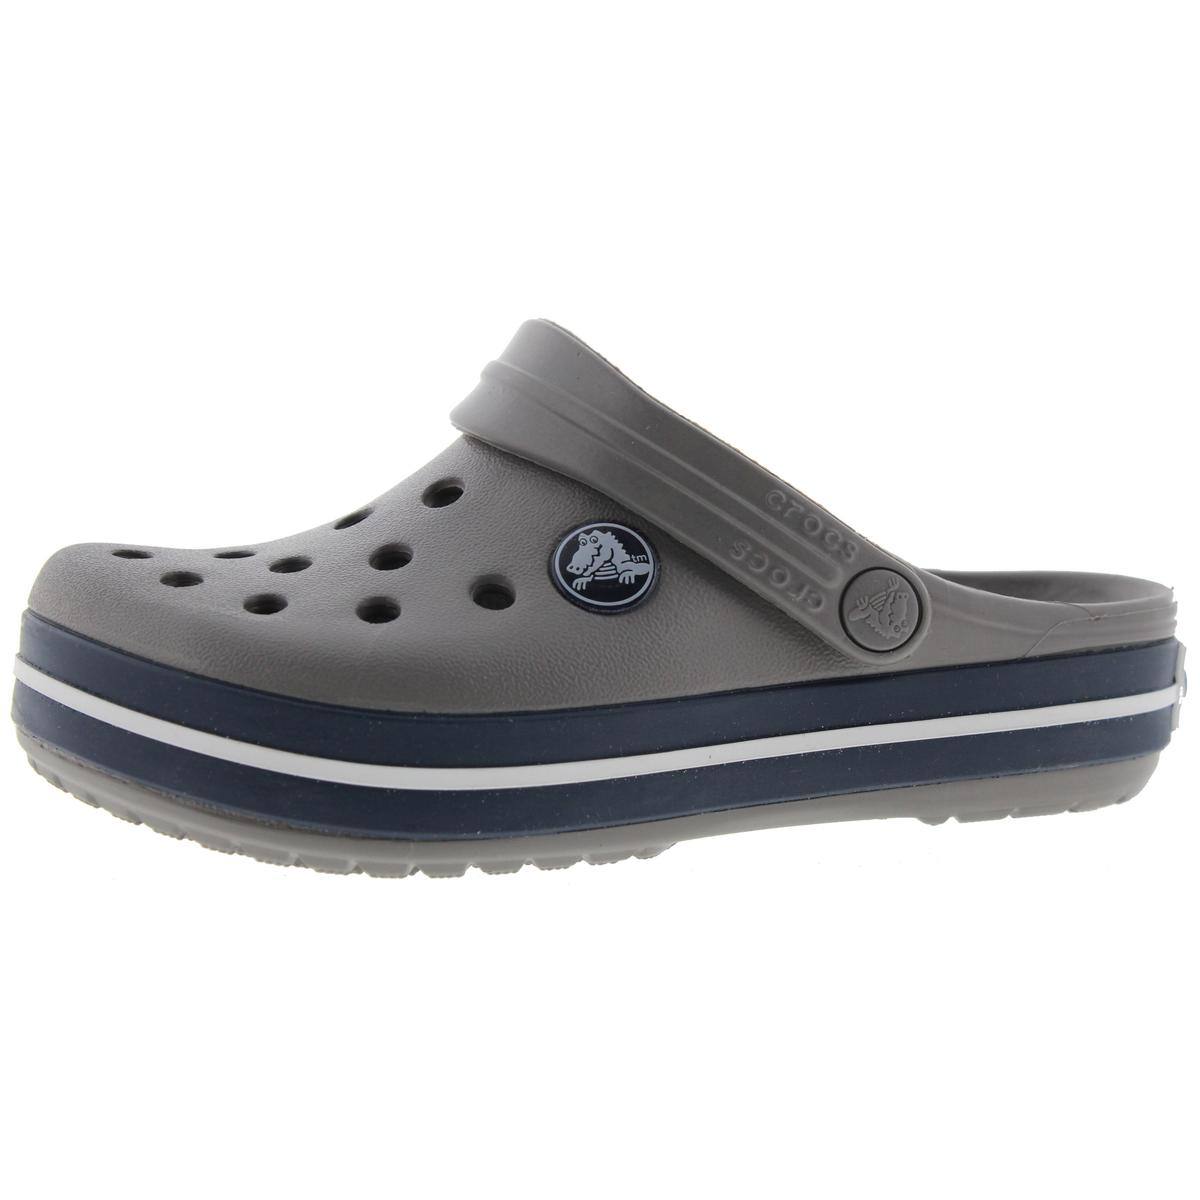 Crocs Boys Perforated Casual Clogs by Crocs